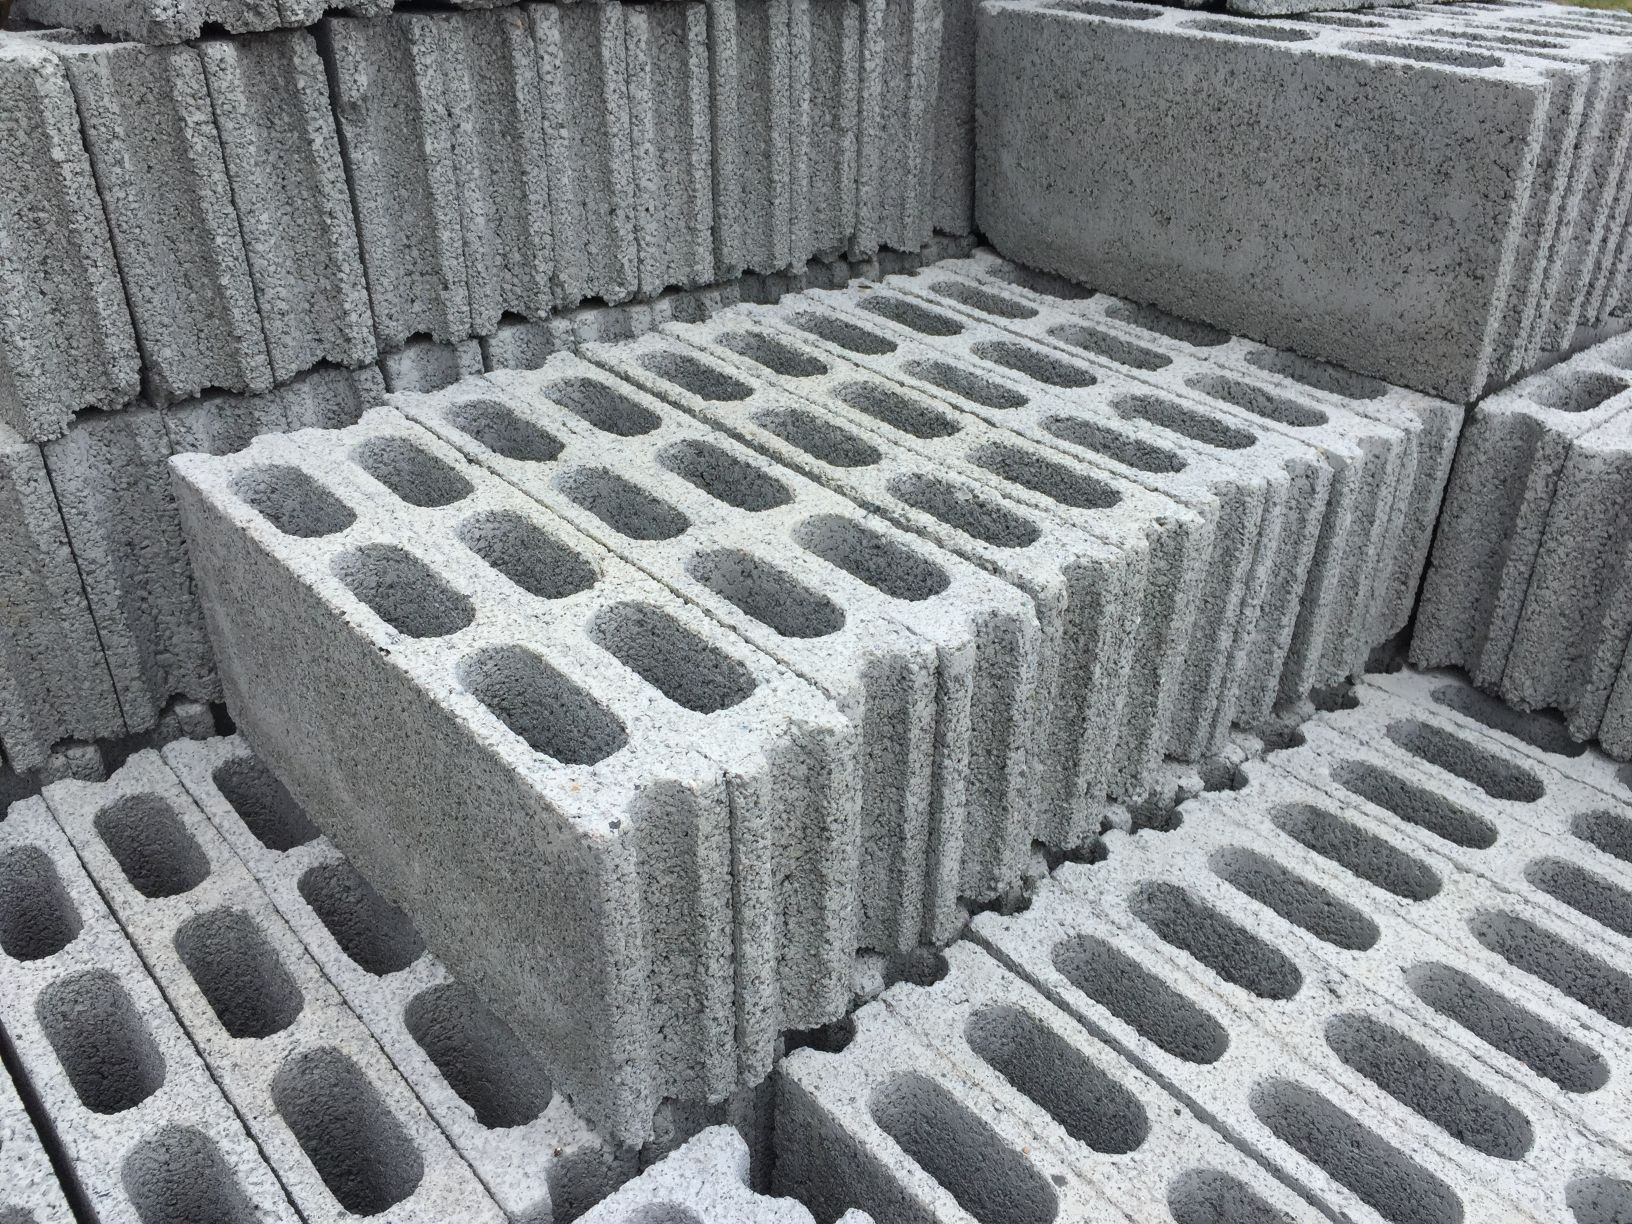 Concrete Blocks & Shapes